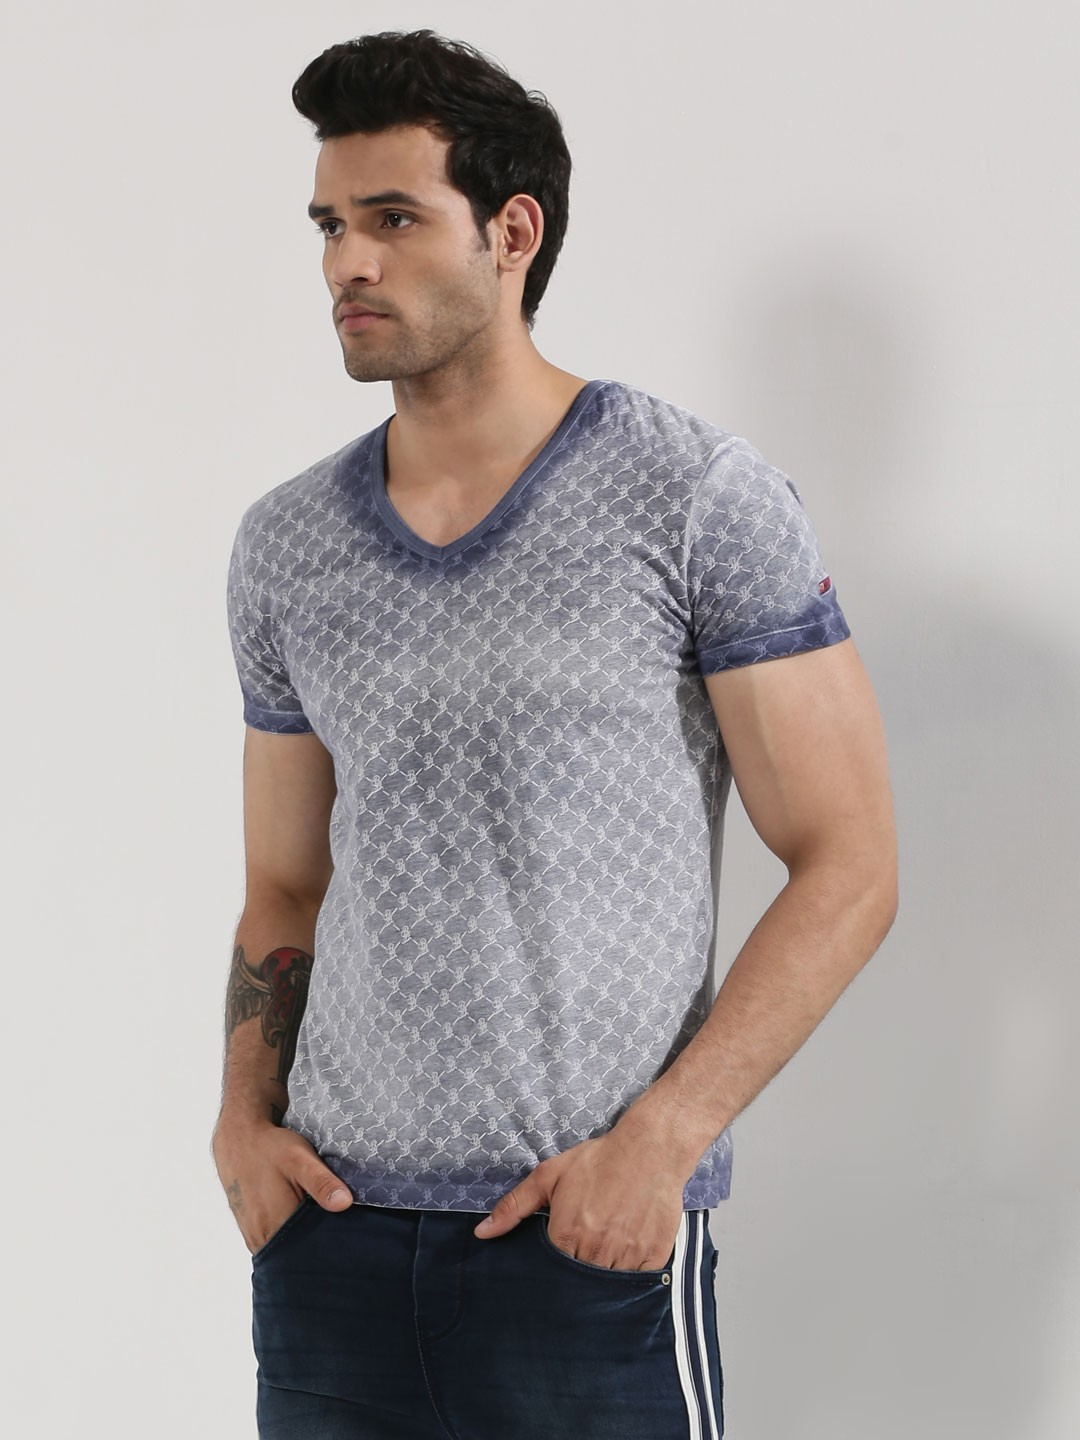 Buy being human oil washed printed v neck t shirt for men for Being human t shirts buy online india